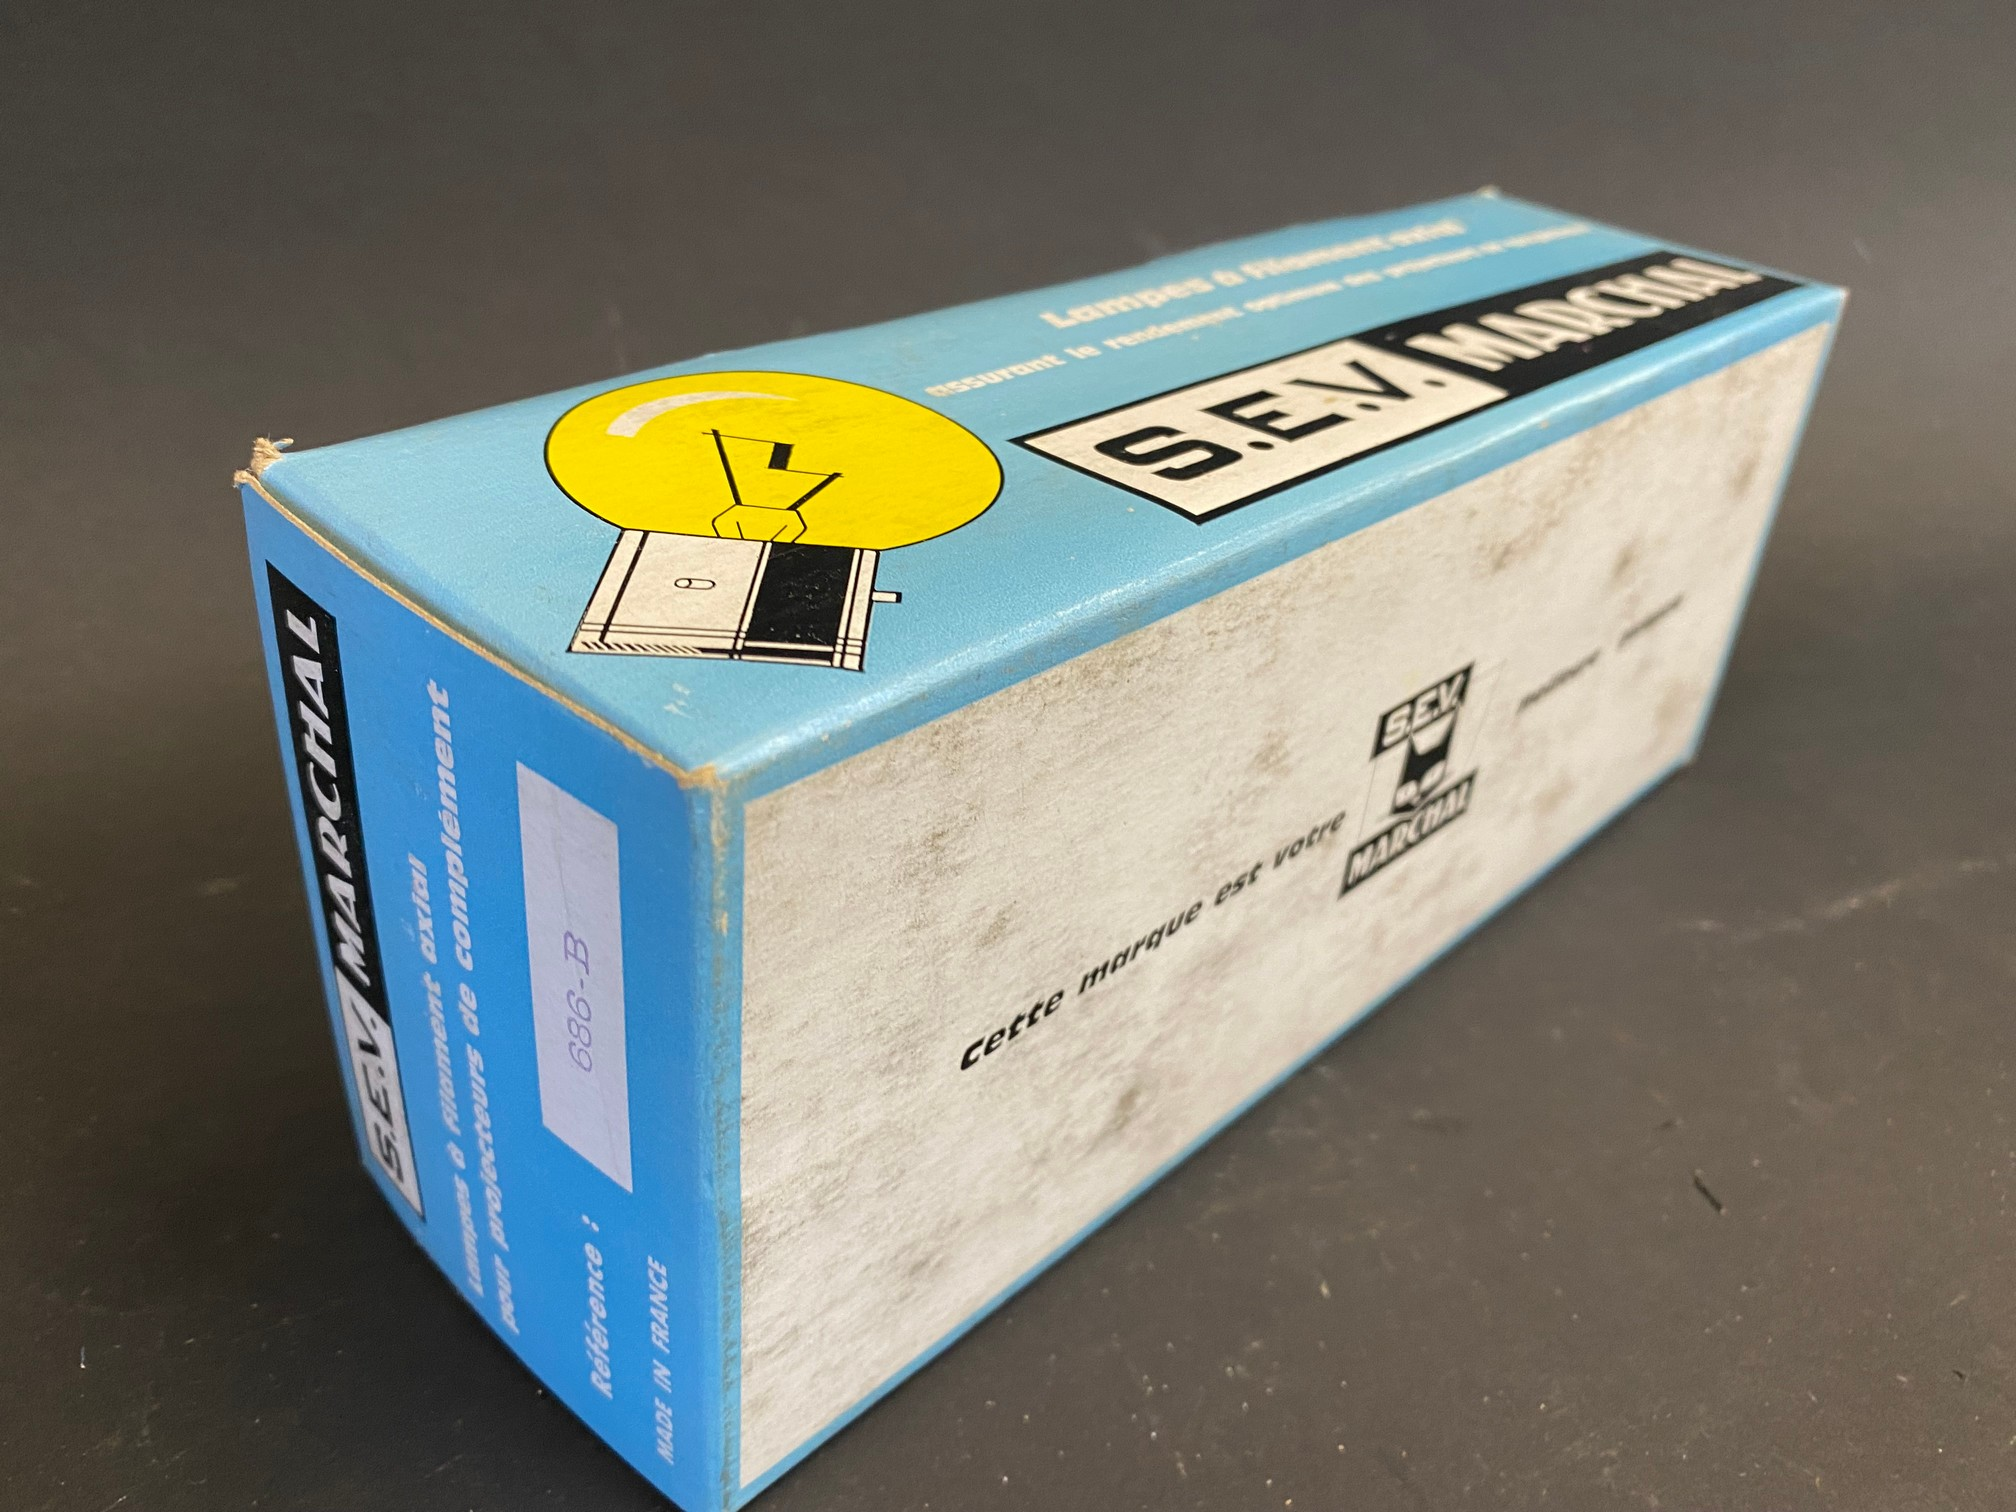 A complete boxed set of S.E.V. Marchal car bulbs, housed in a great advertising display box. - Image 3 of 3